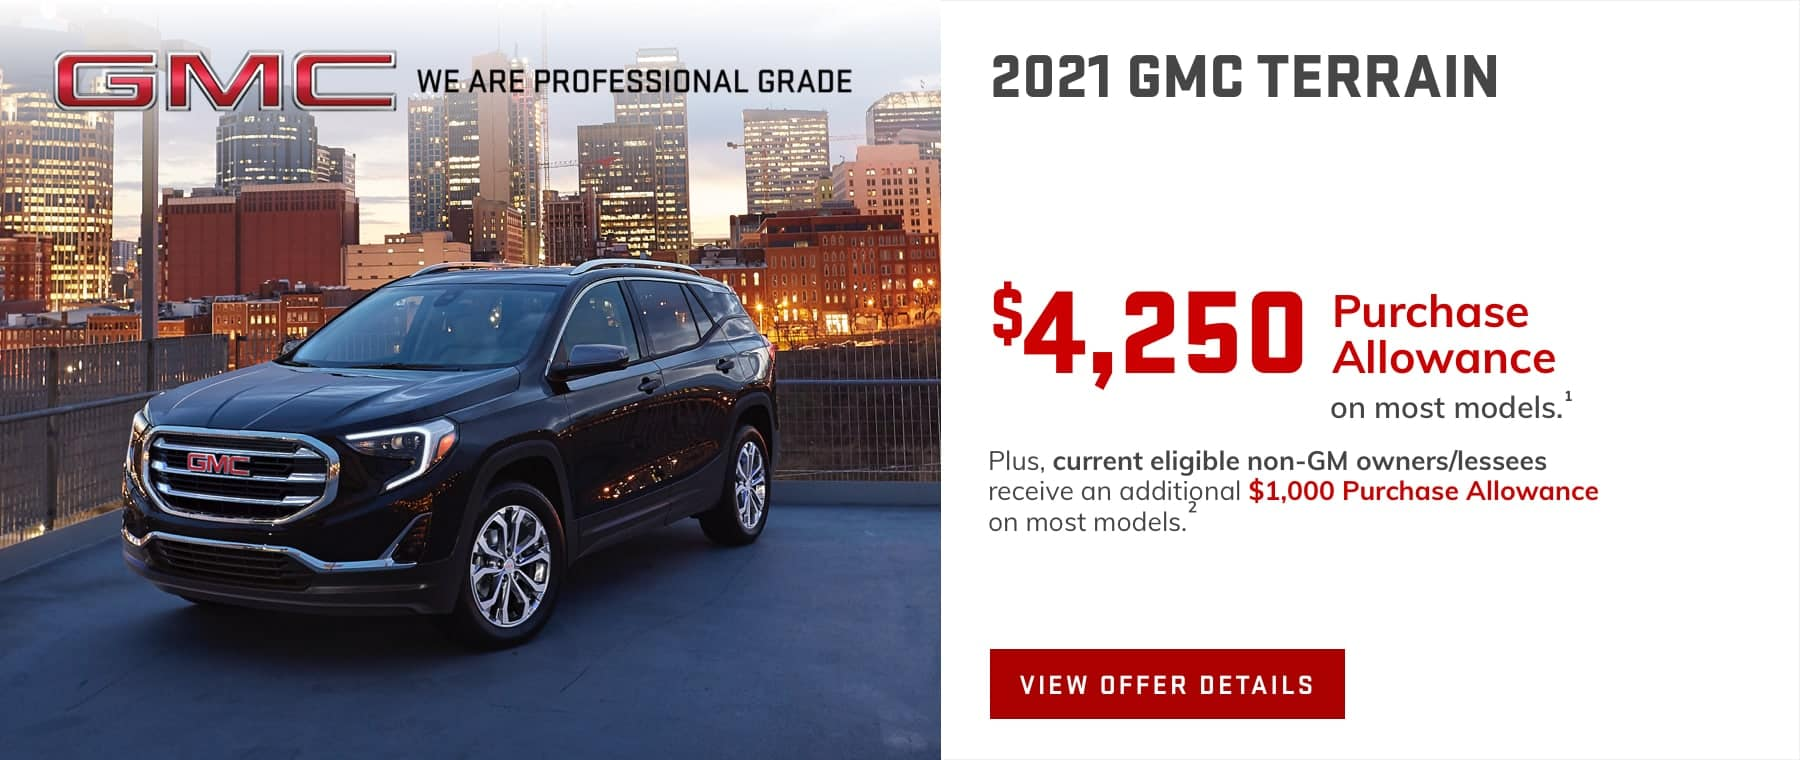 $4,250 Purchase Allowance on most models.1 Plus, current eligible non-GM owners/lessees receive an additional $1,000 Purchase Allowance on most models.